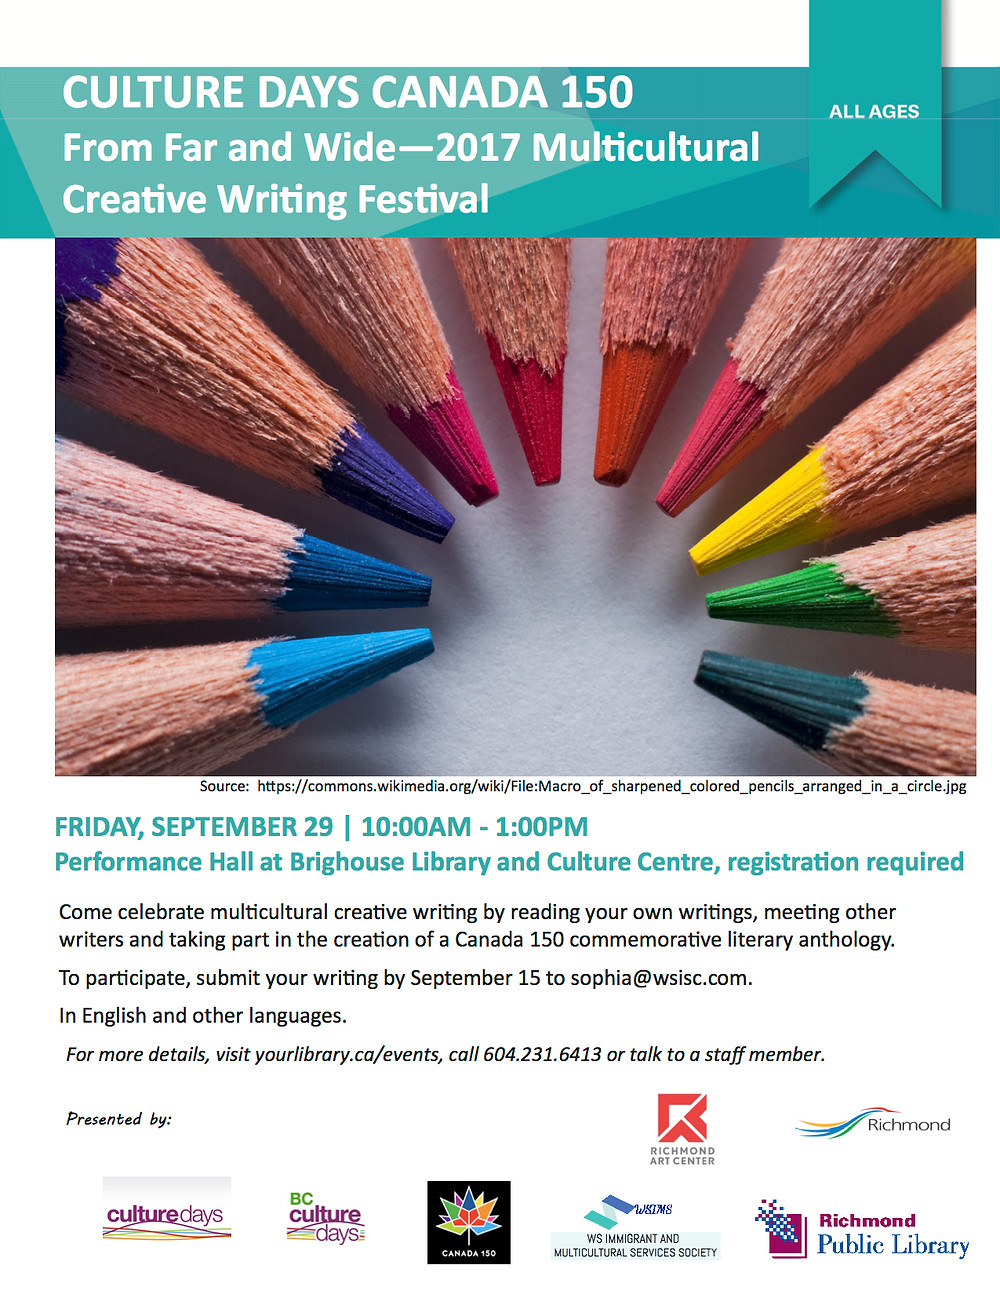 2017 Multicultural Creative Writing Contest, Festival & Book Launch